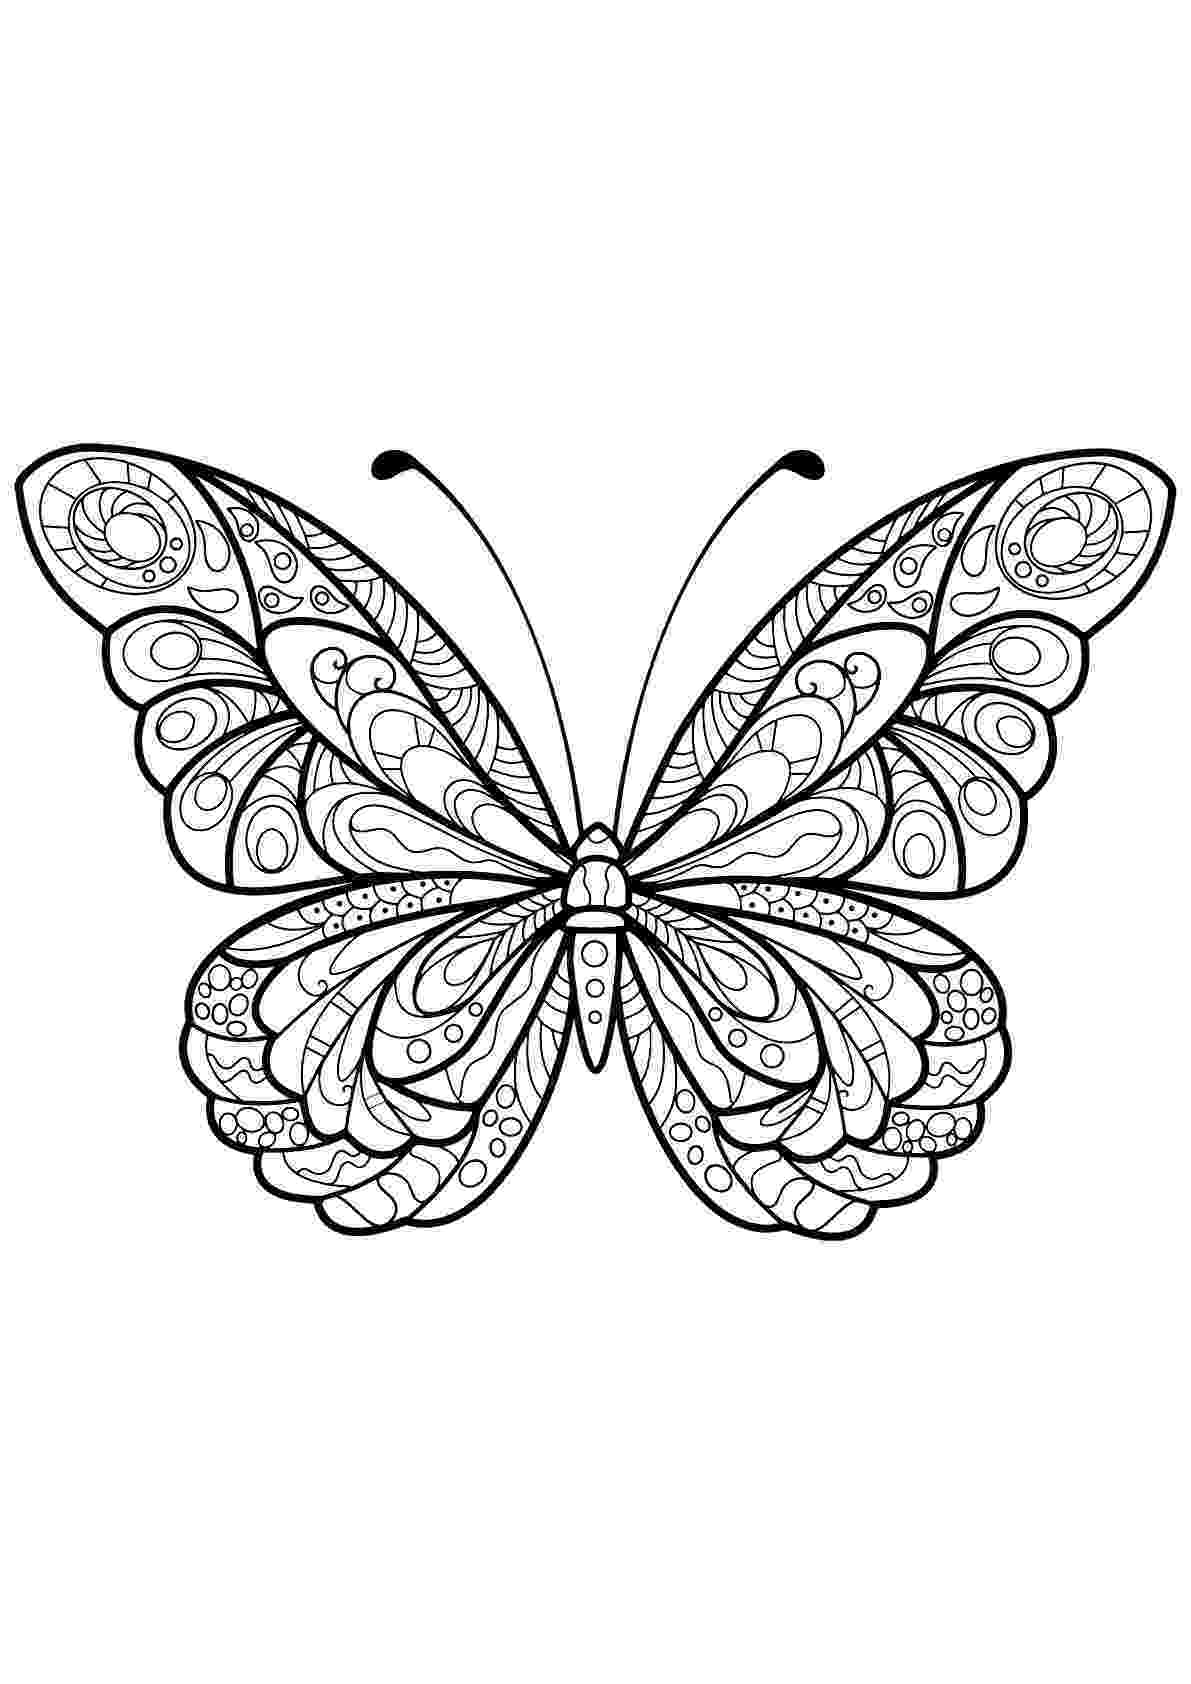 coloring pages for adults butterflies butterfly coloring pages for adults best coloring pages pages coloring adults for butterflies